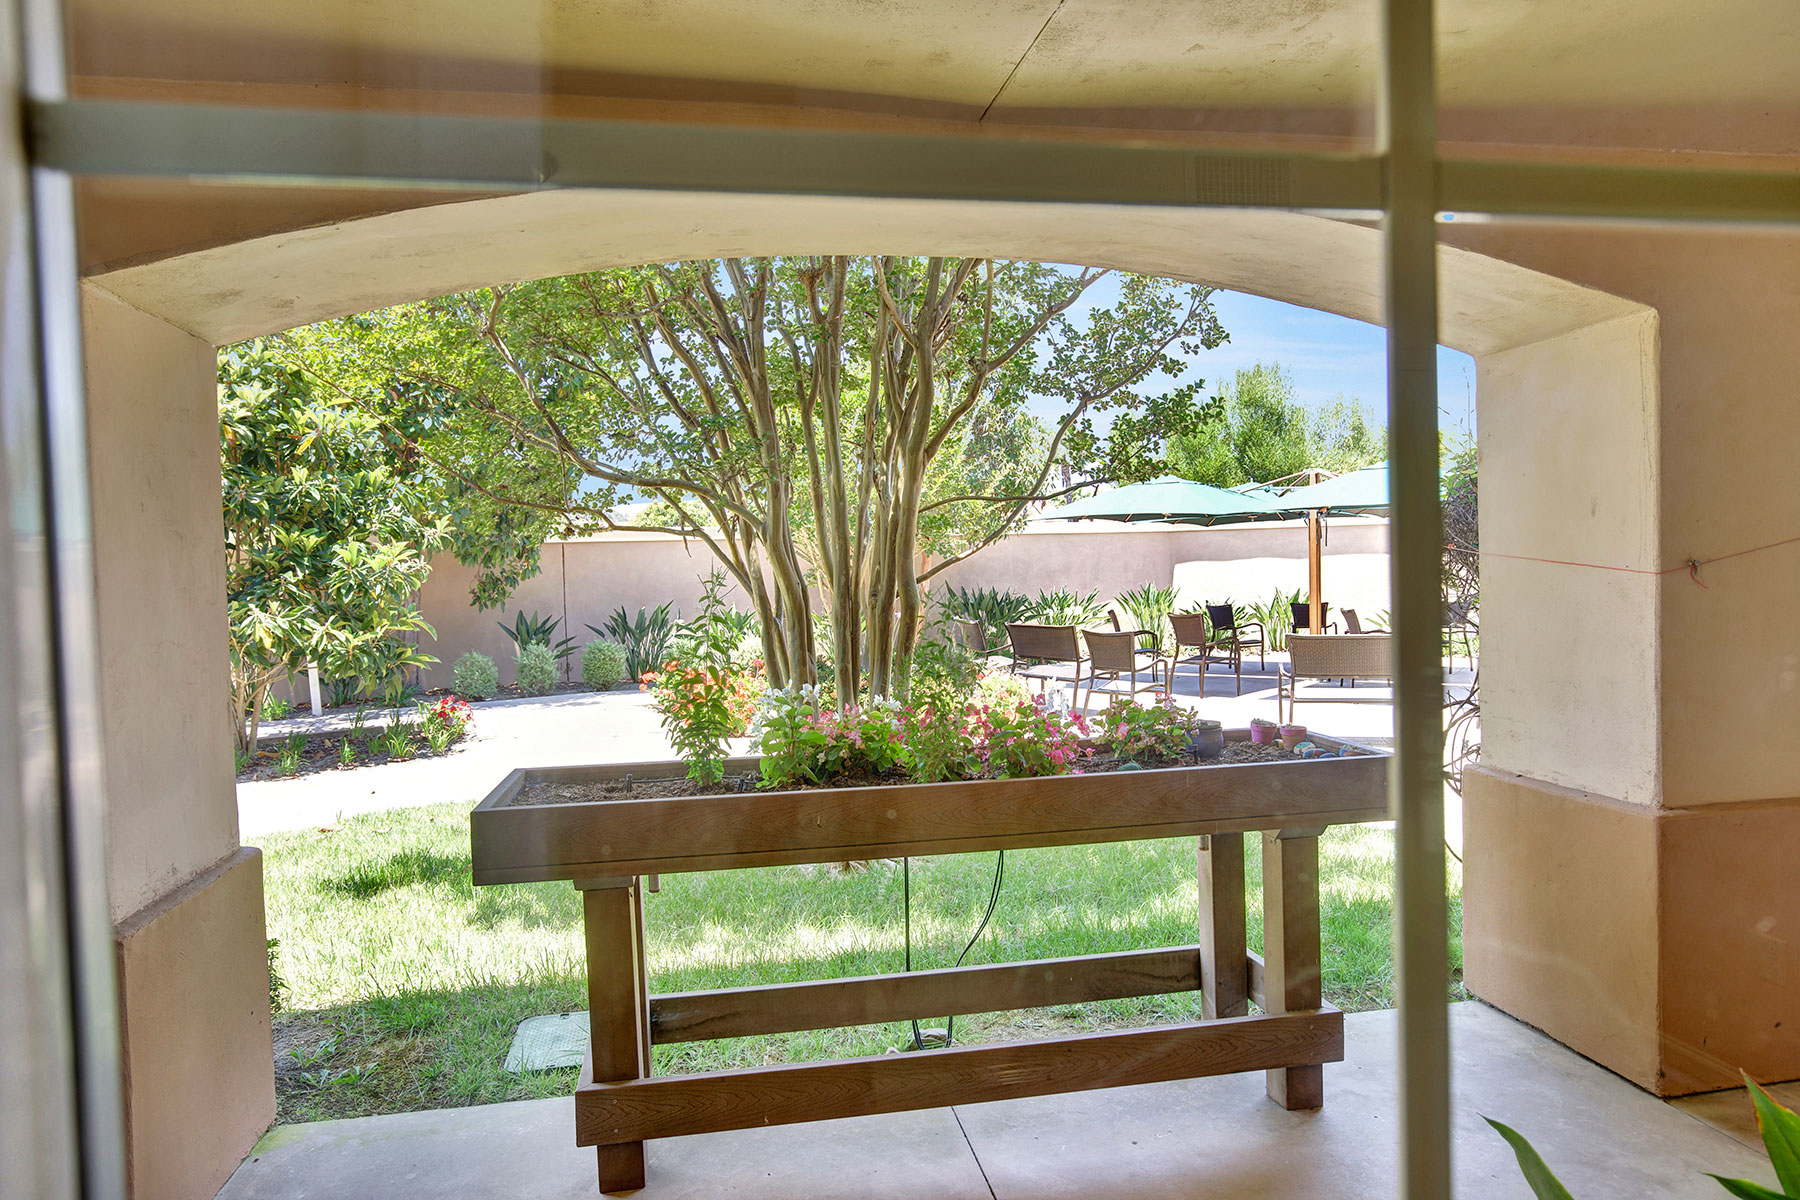 Memory Care backyard with raised garden and covered seating.